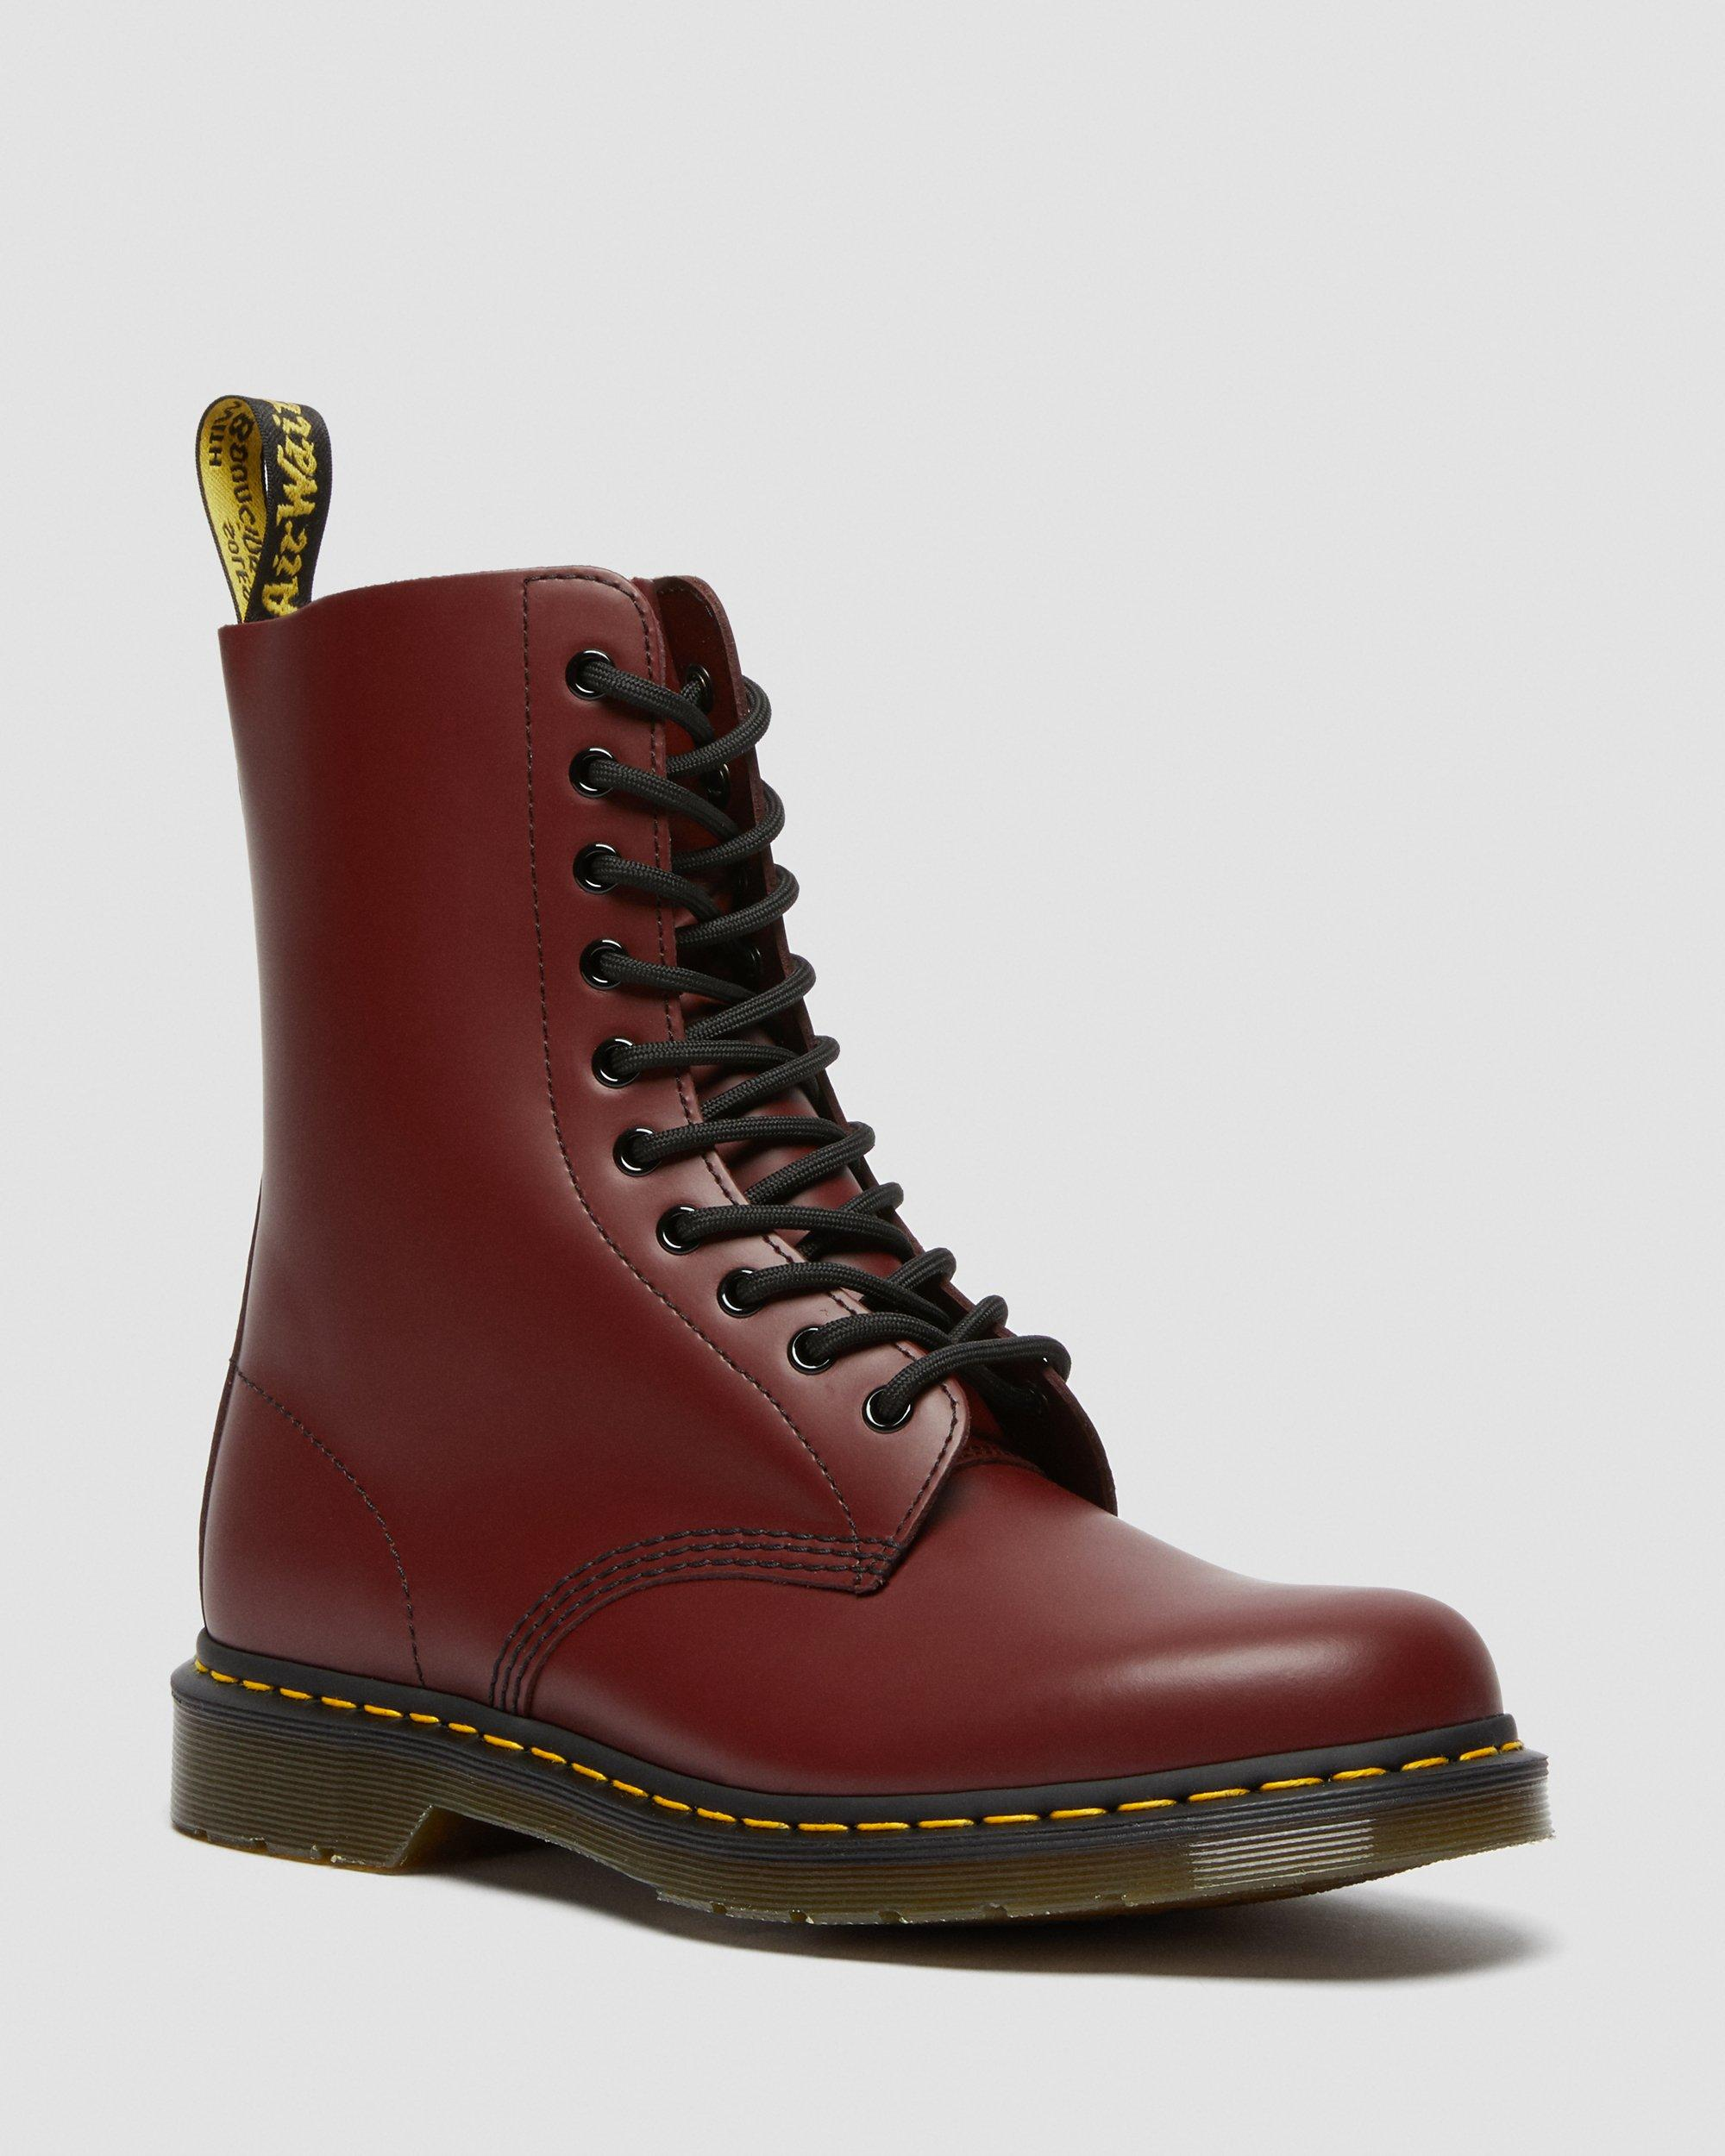 1490 SMOOTH LEATHER MID CALF BOOTS | Dr